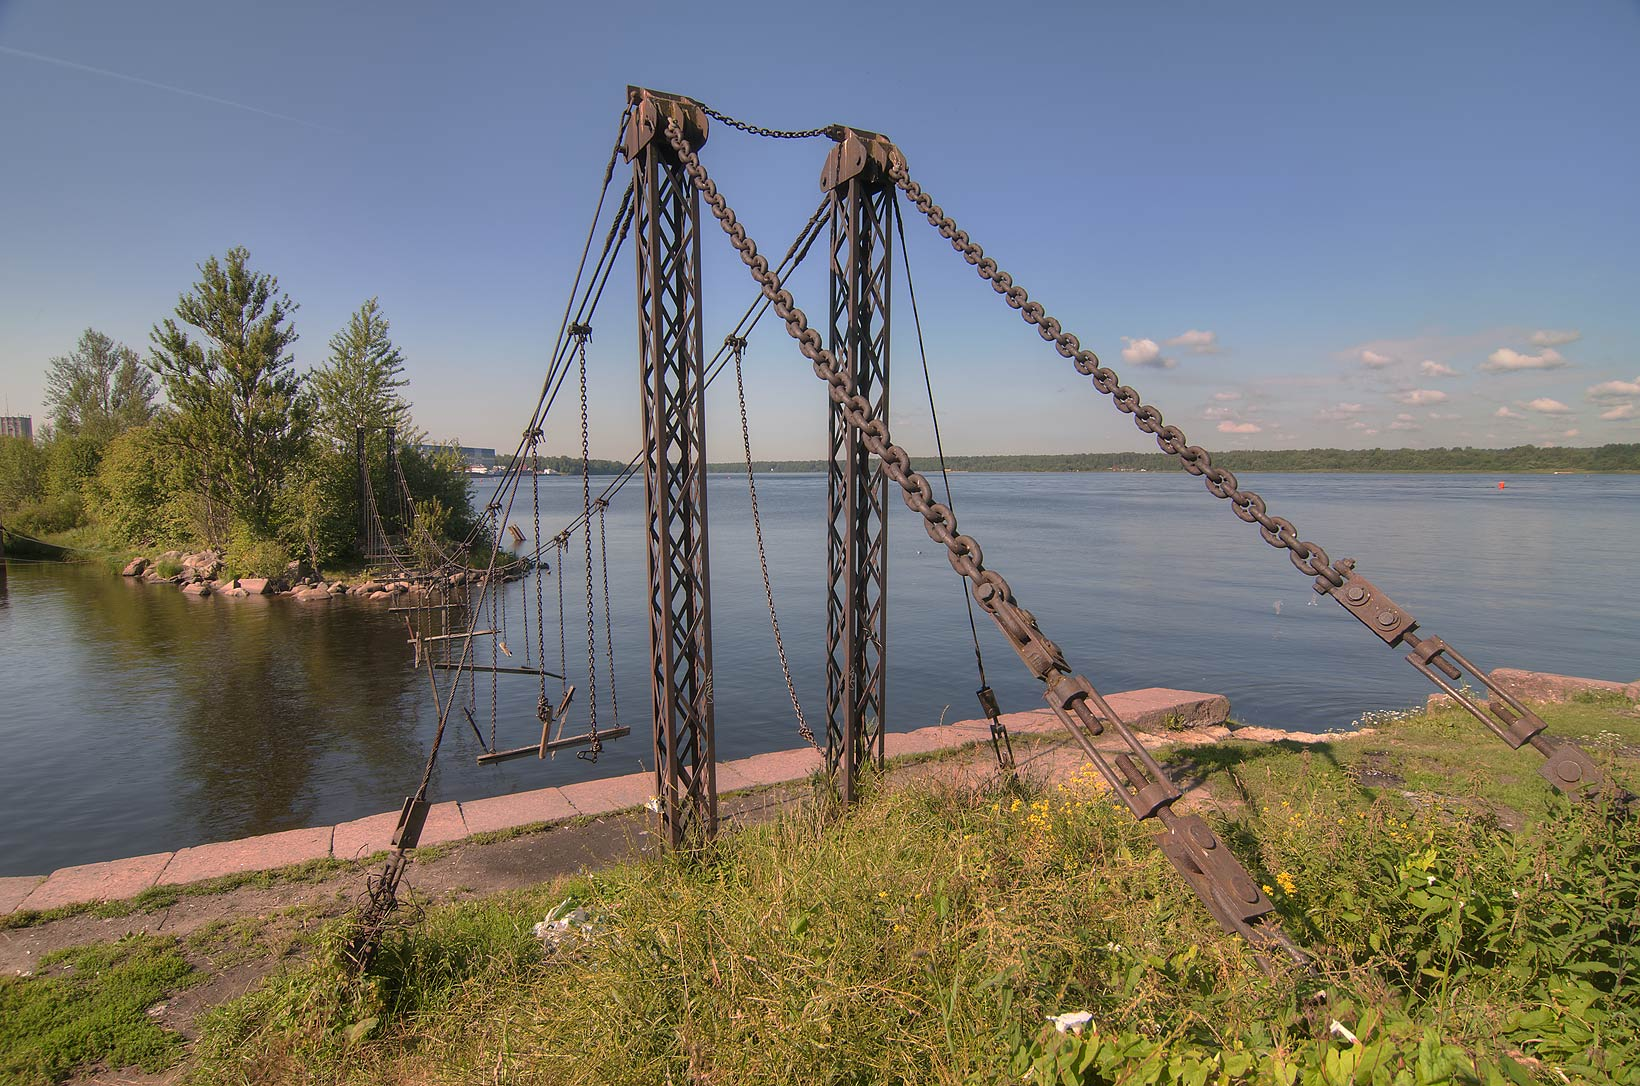 Old suspension bridge. Shlisselburg, Leningradskaya Region, Russia